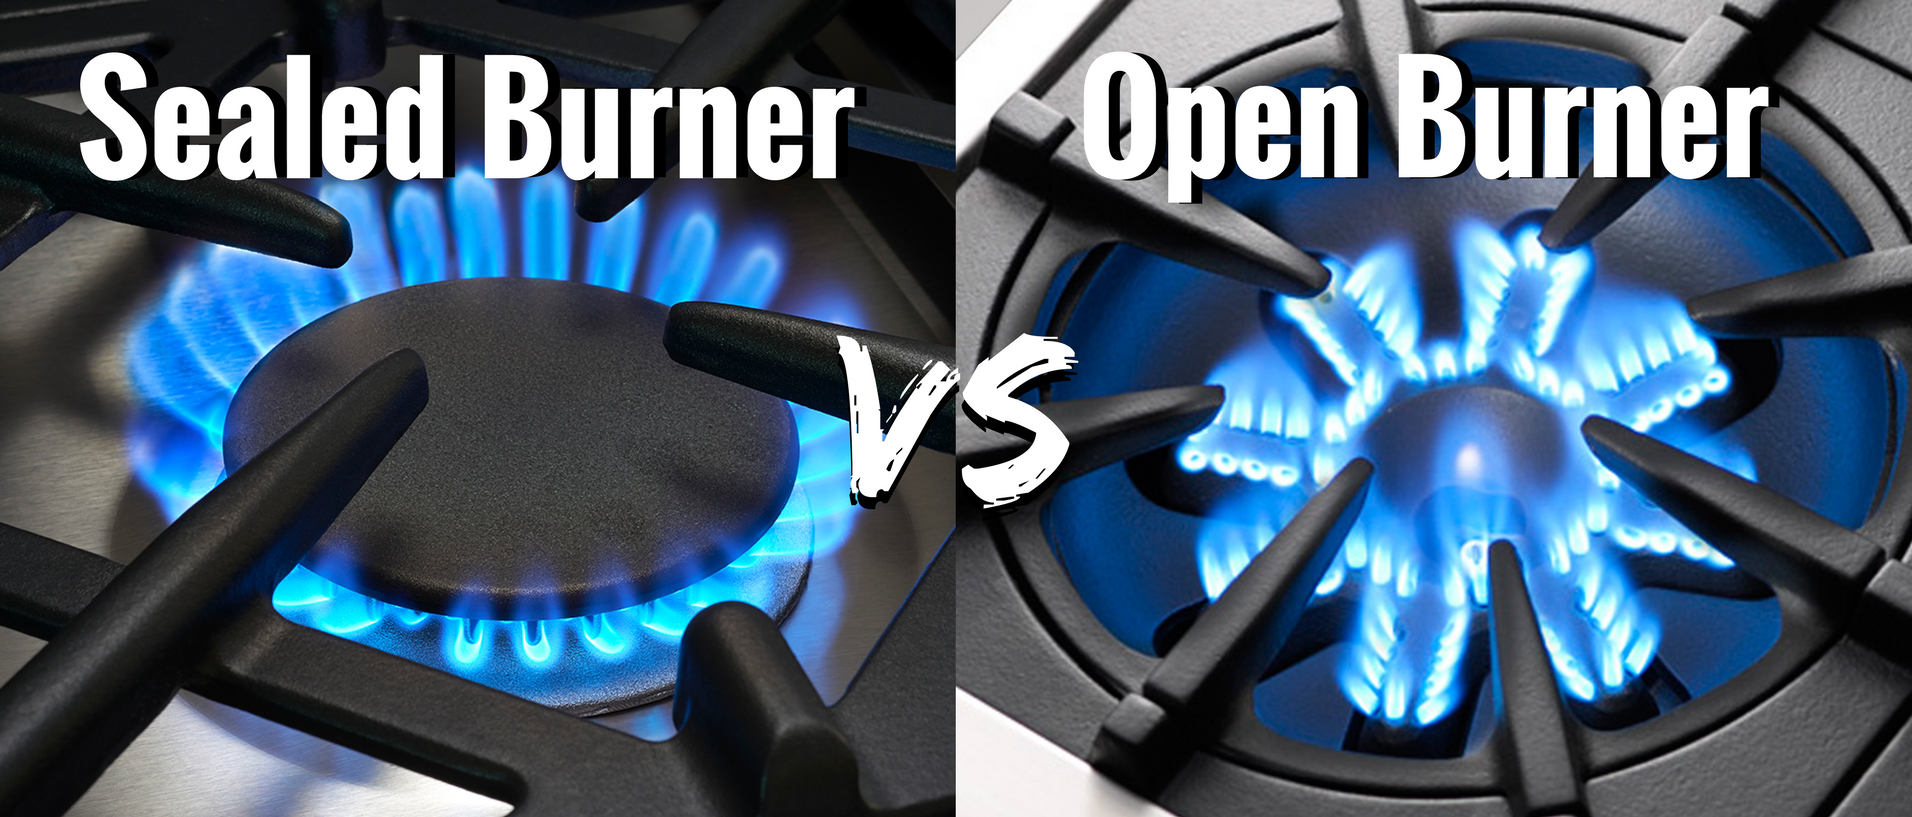 Open Vs Sealed Burners Appliances Connection Thermador Range Wiring Diagram When Buying A New Gas Youll Need To Choose Between Or There Are Many Debates About Which One Is Better